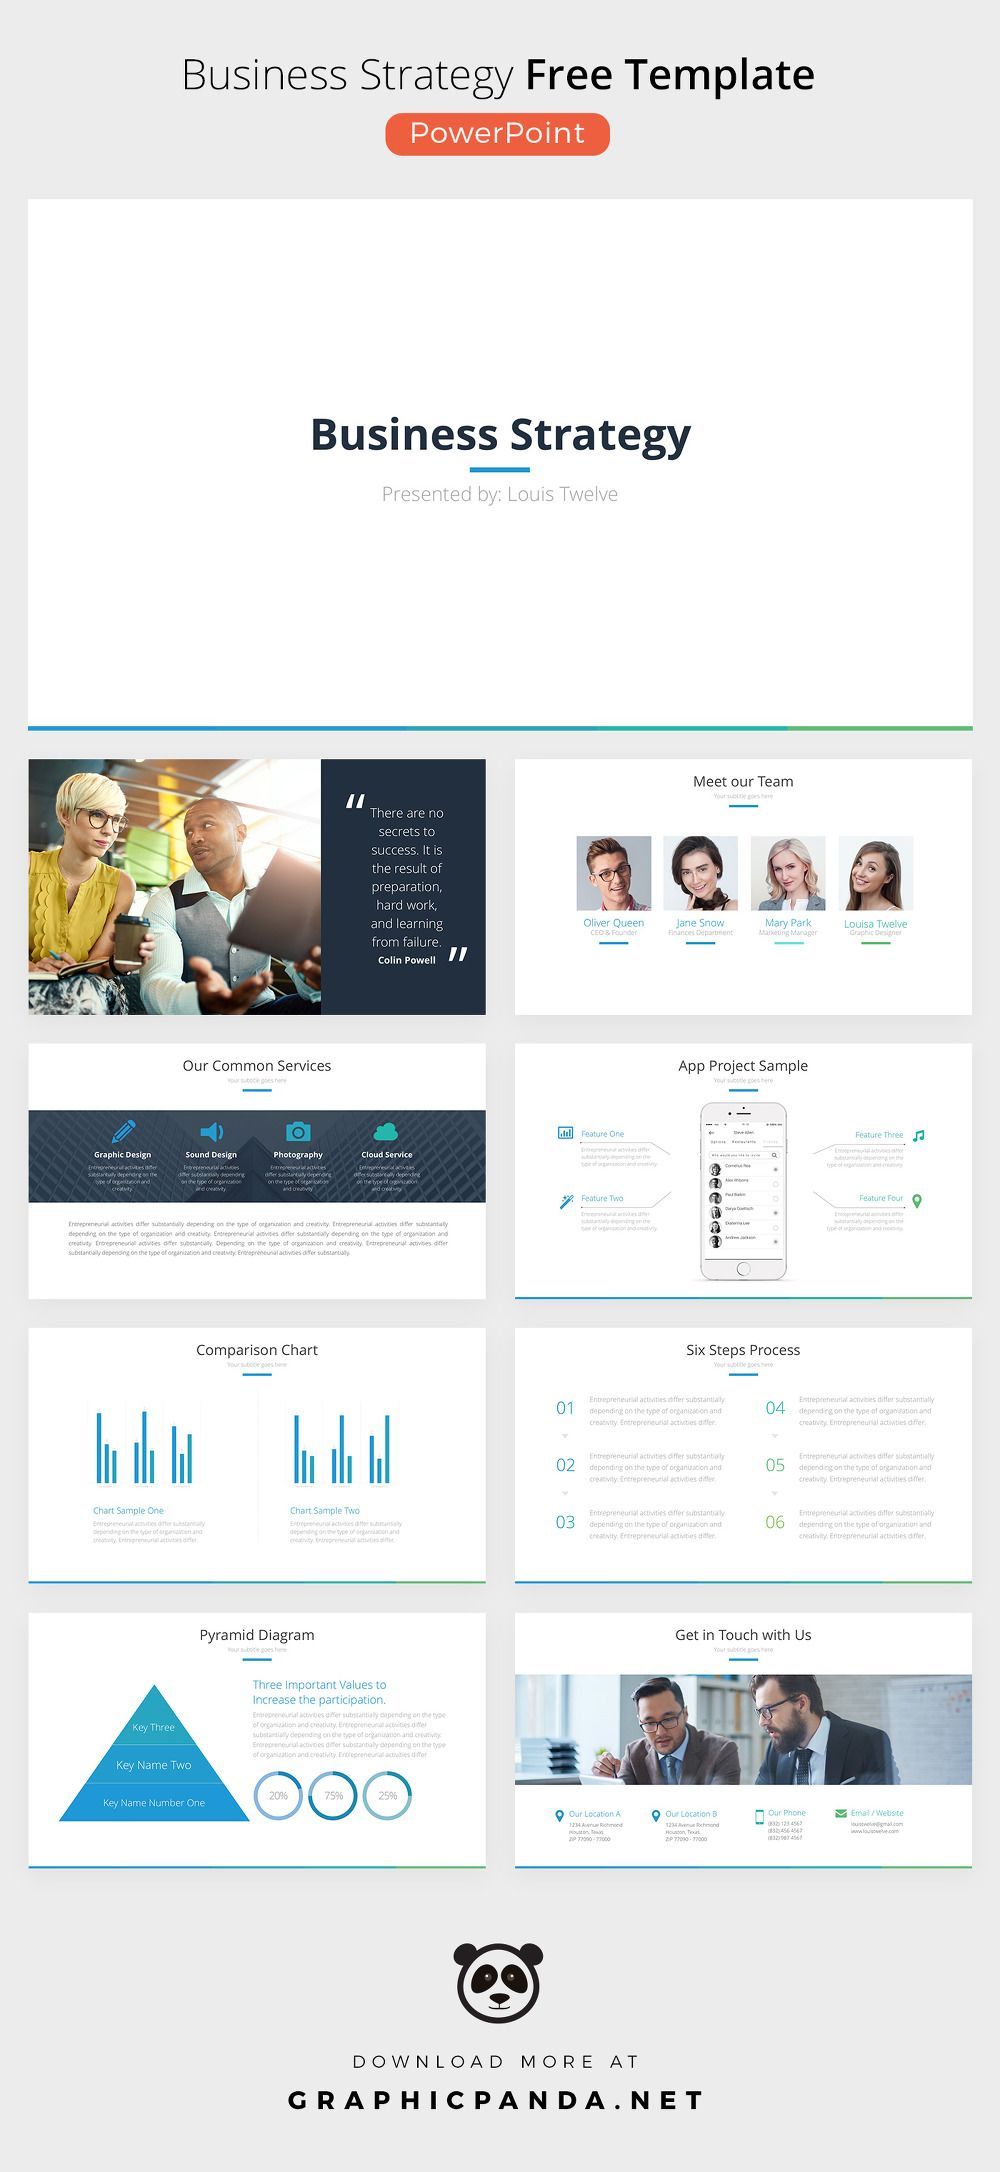 ppt free business ppt free business strategy powerpoint template pptx accmission Image collections